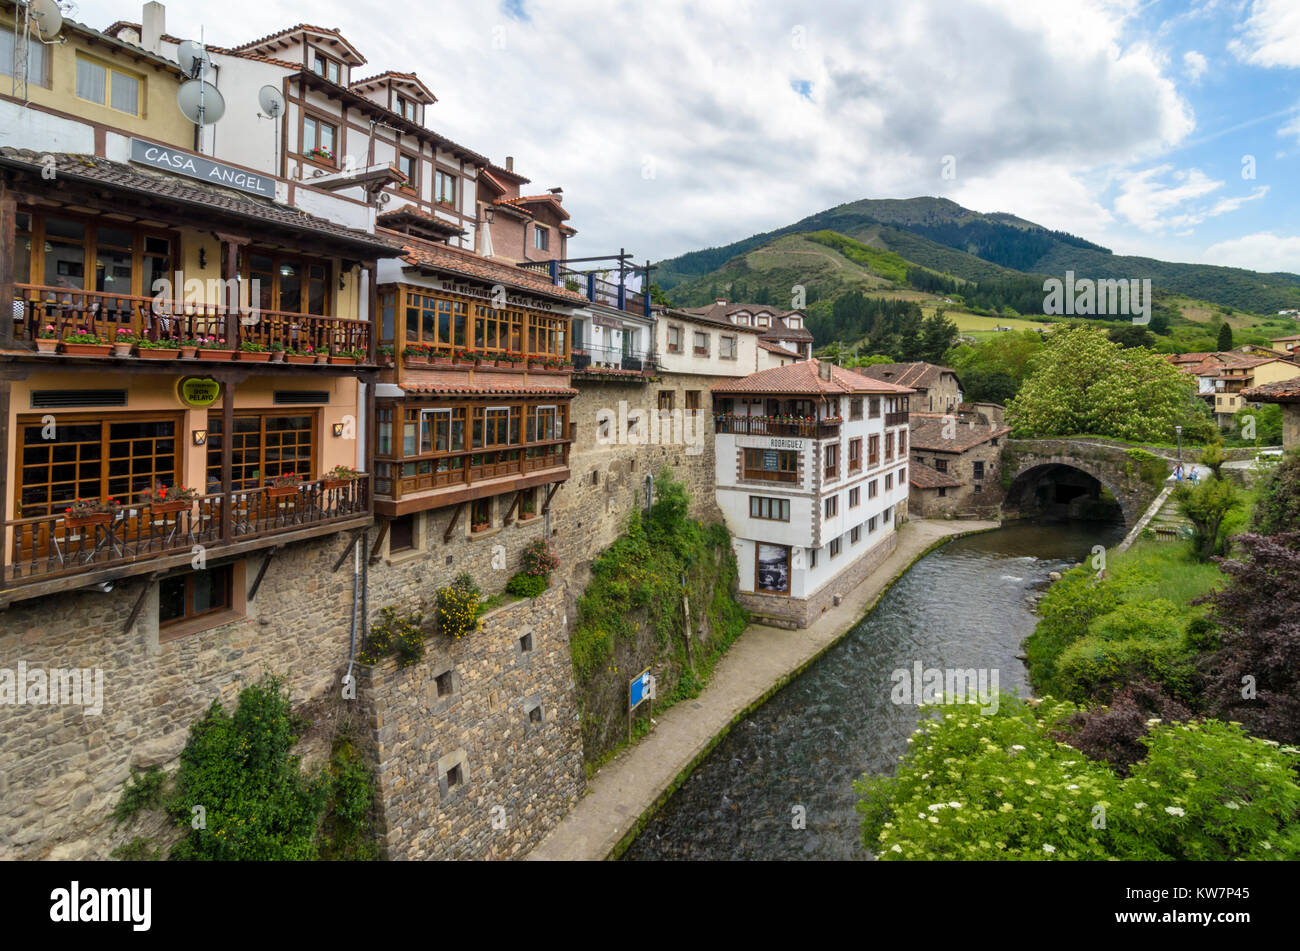 Potes Town hanging old buildings over the Rio Quiviesa, Potes, Cantabria, Spain - Stock Image